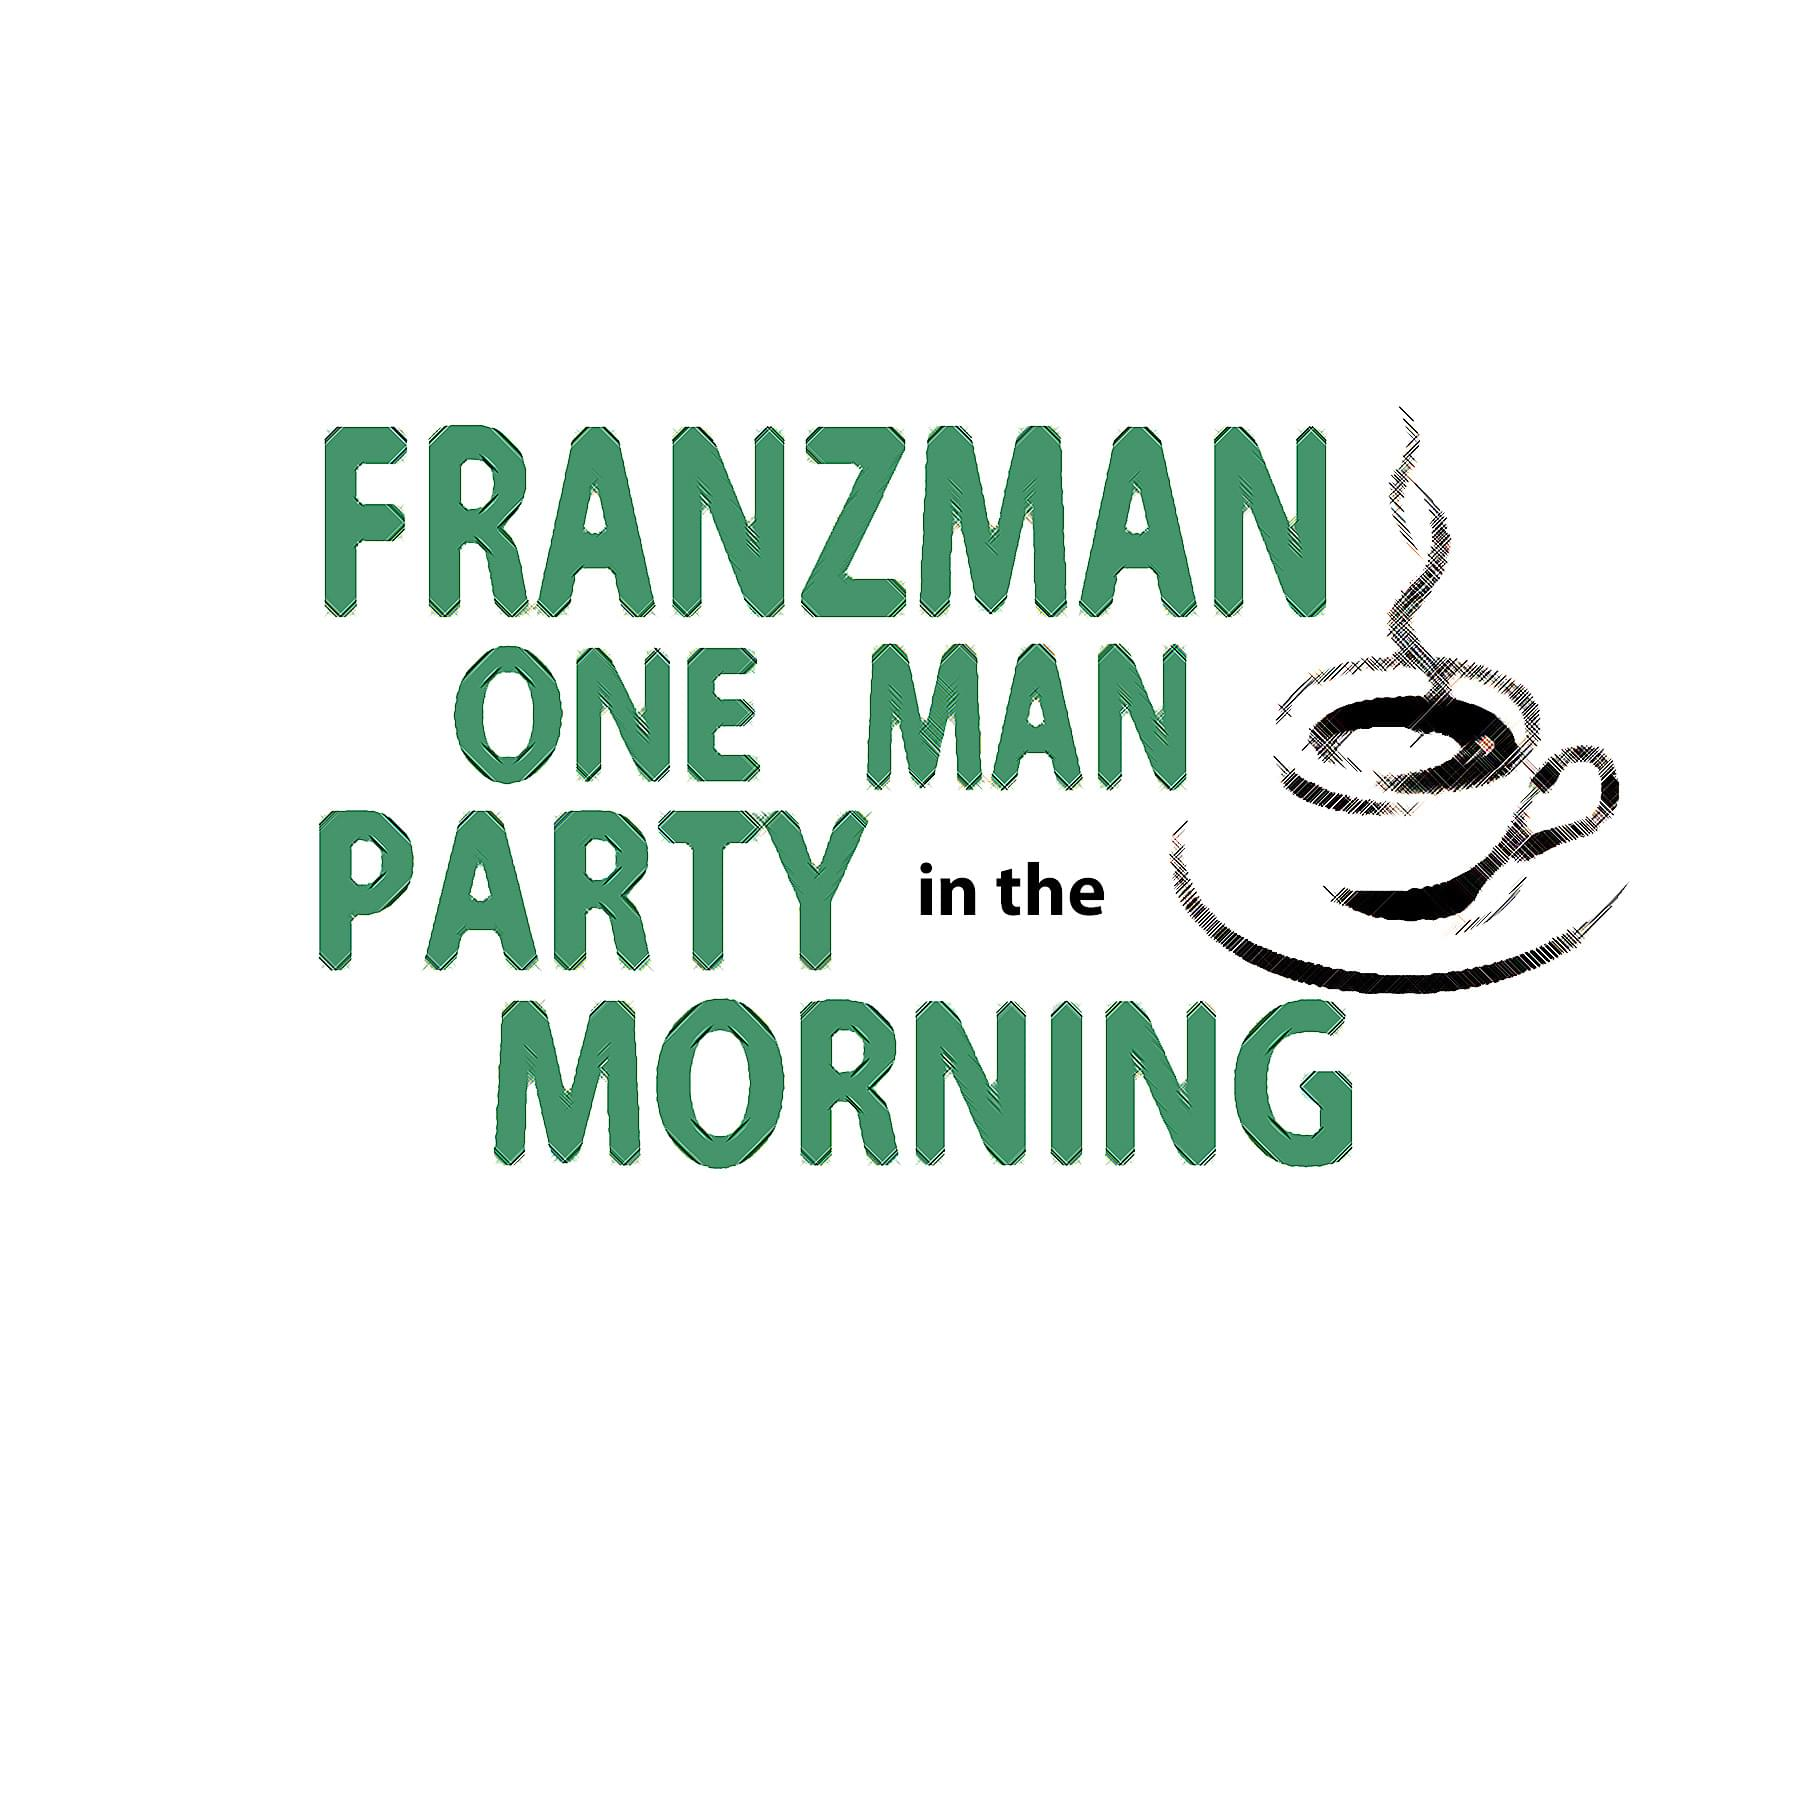 LOGO - franzman 3 - transparancy - 02-07-14 (2) - Copy